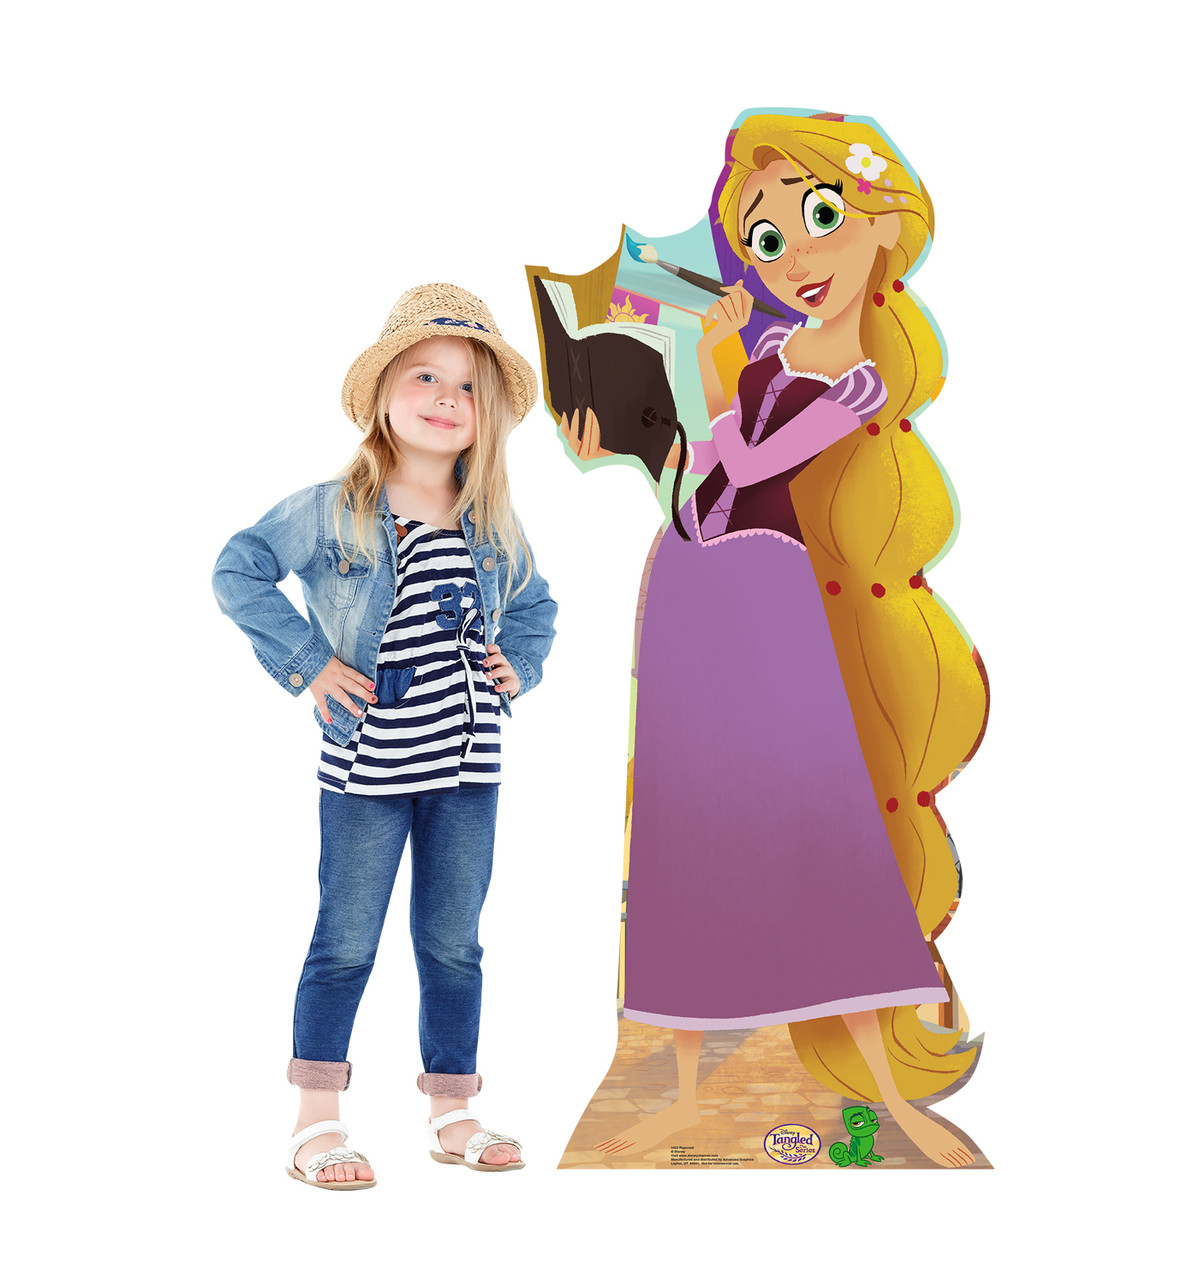 Life-size Rapunzel (Tangled The Series) Cardboard Standup |Cardboard Cutout 2